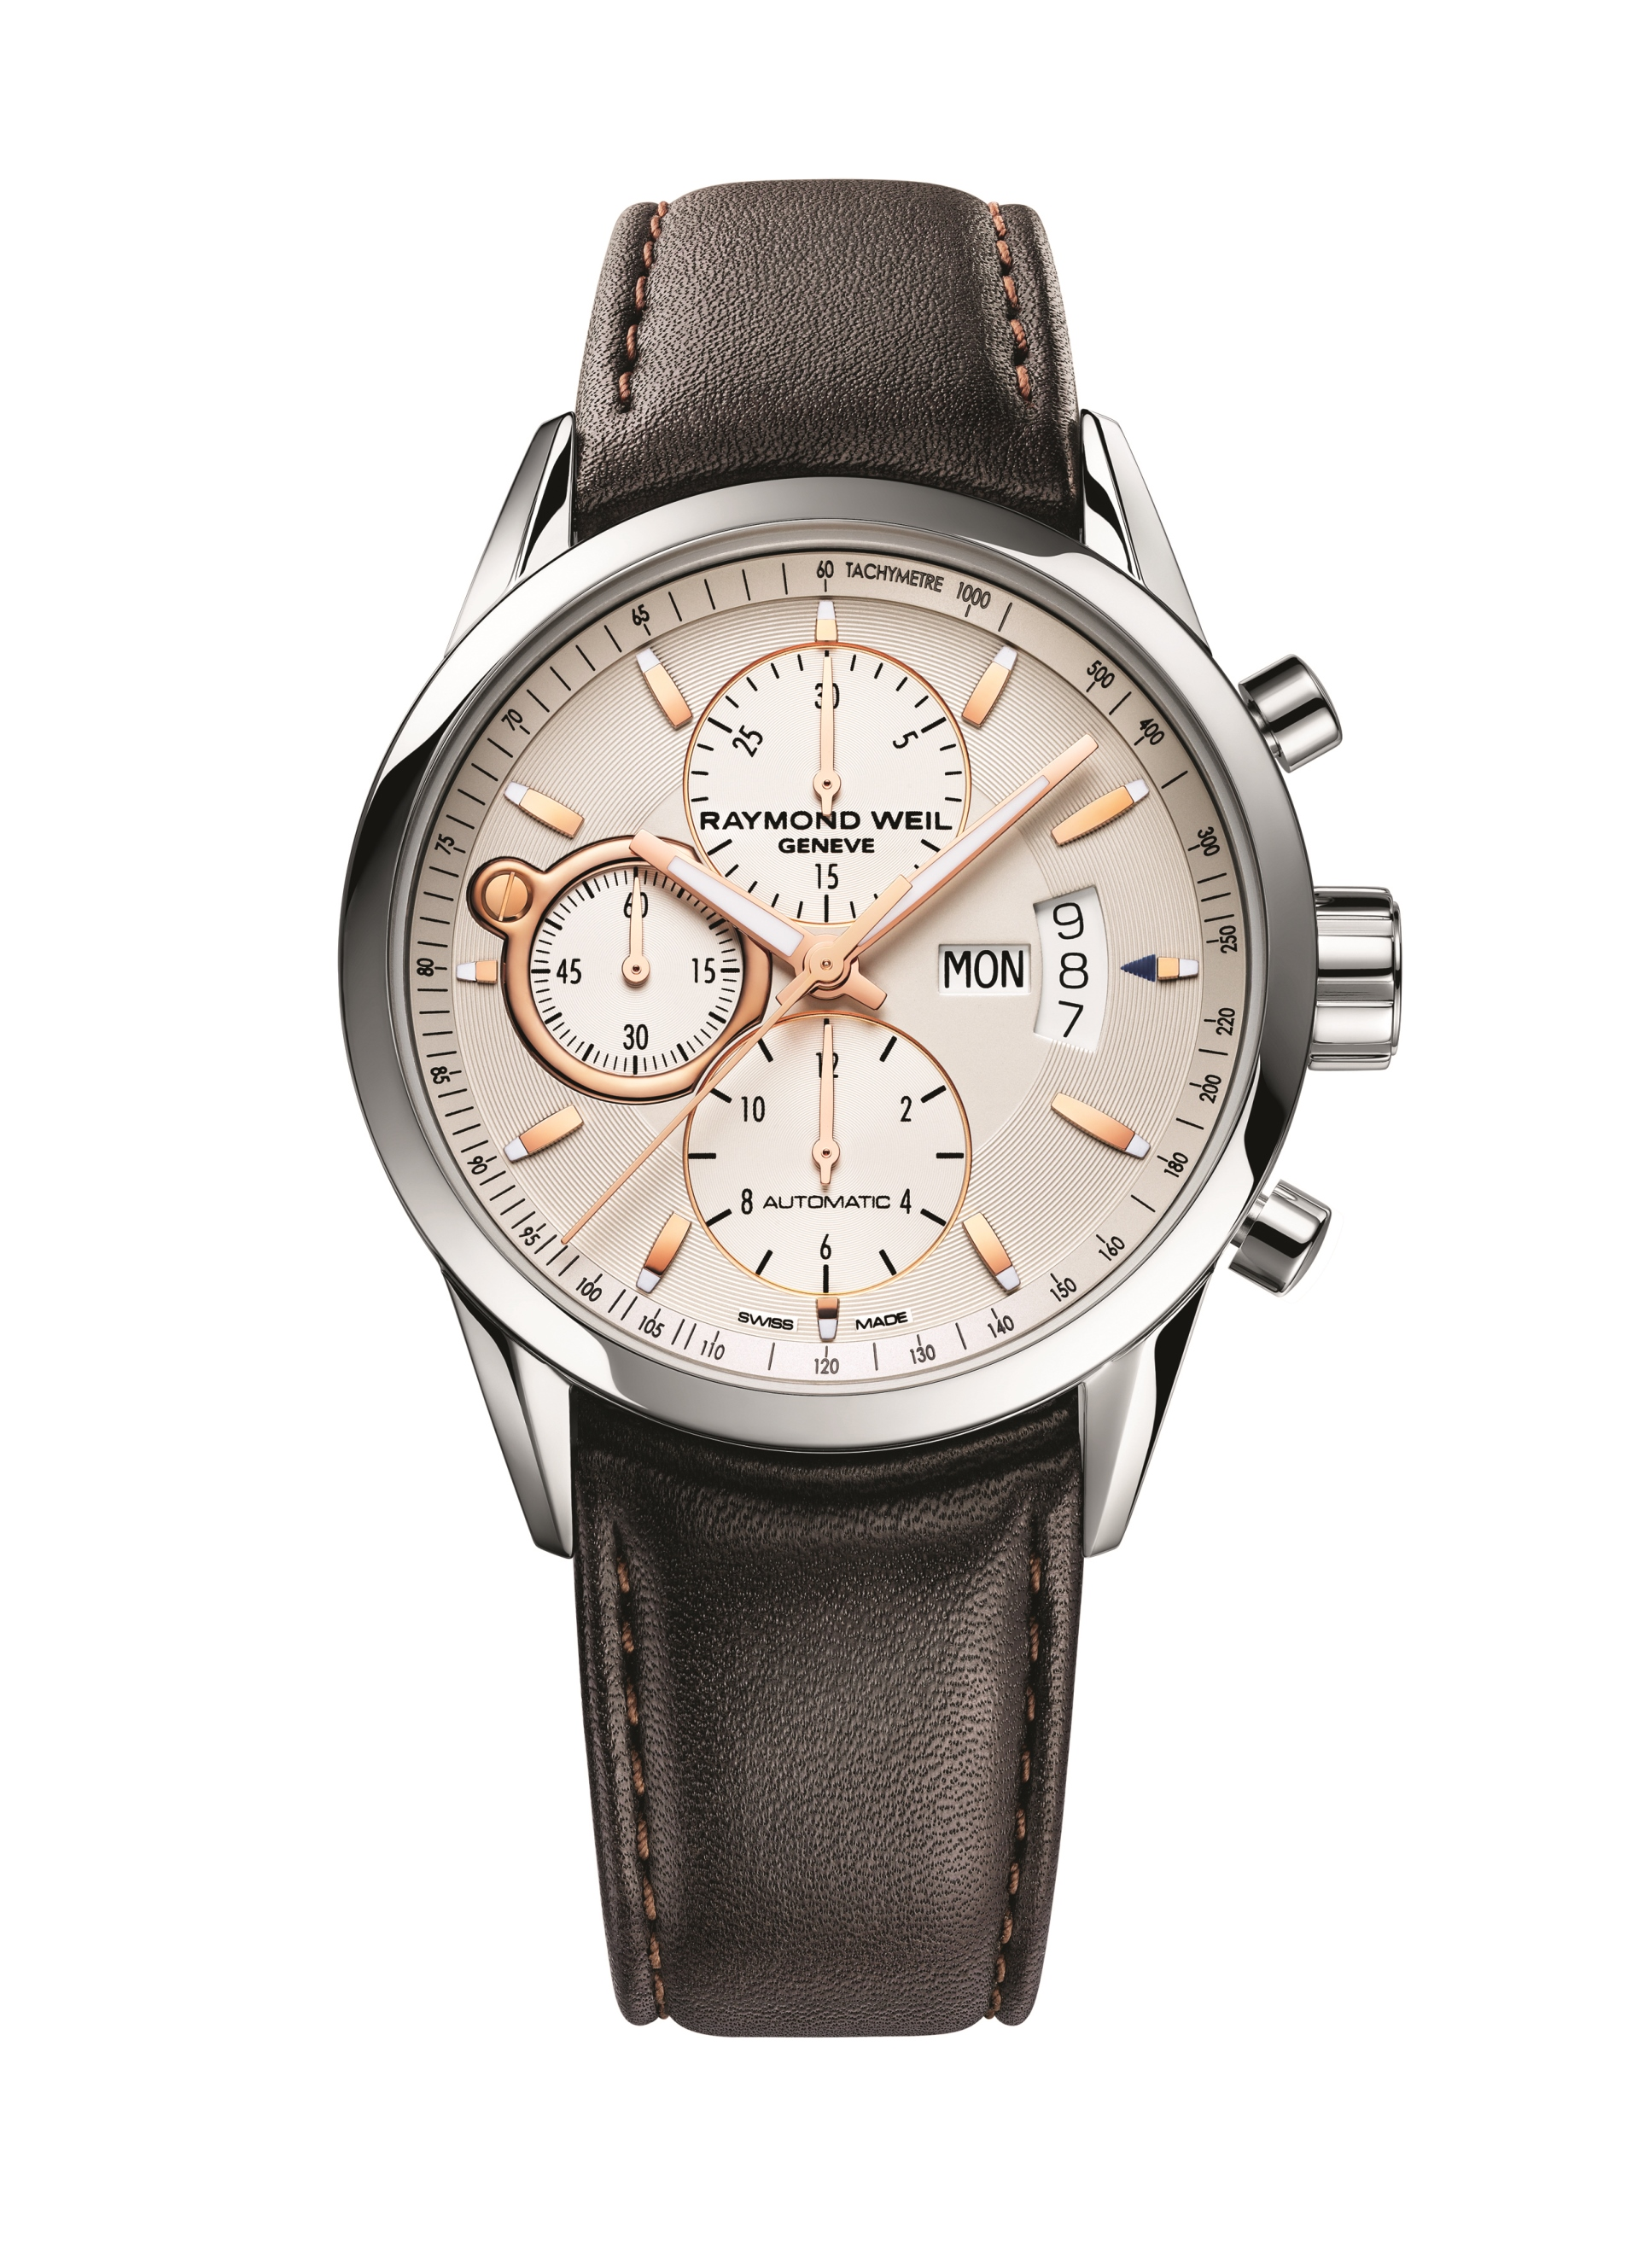 six rose gold watches for men huffpost uk 2015 05 21 1432228257 3734385 raymondweilmens lancerautomaticchronographwatchproduct jpg